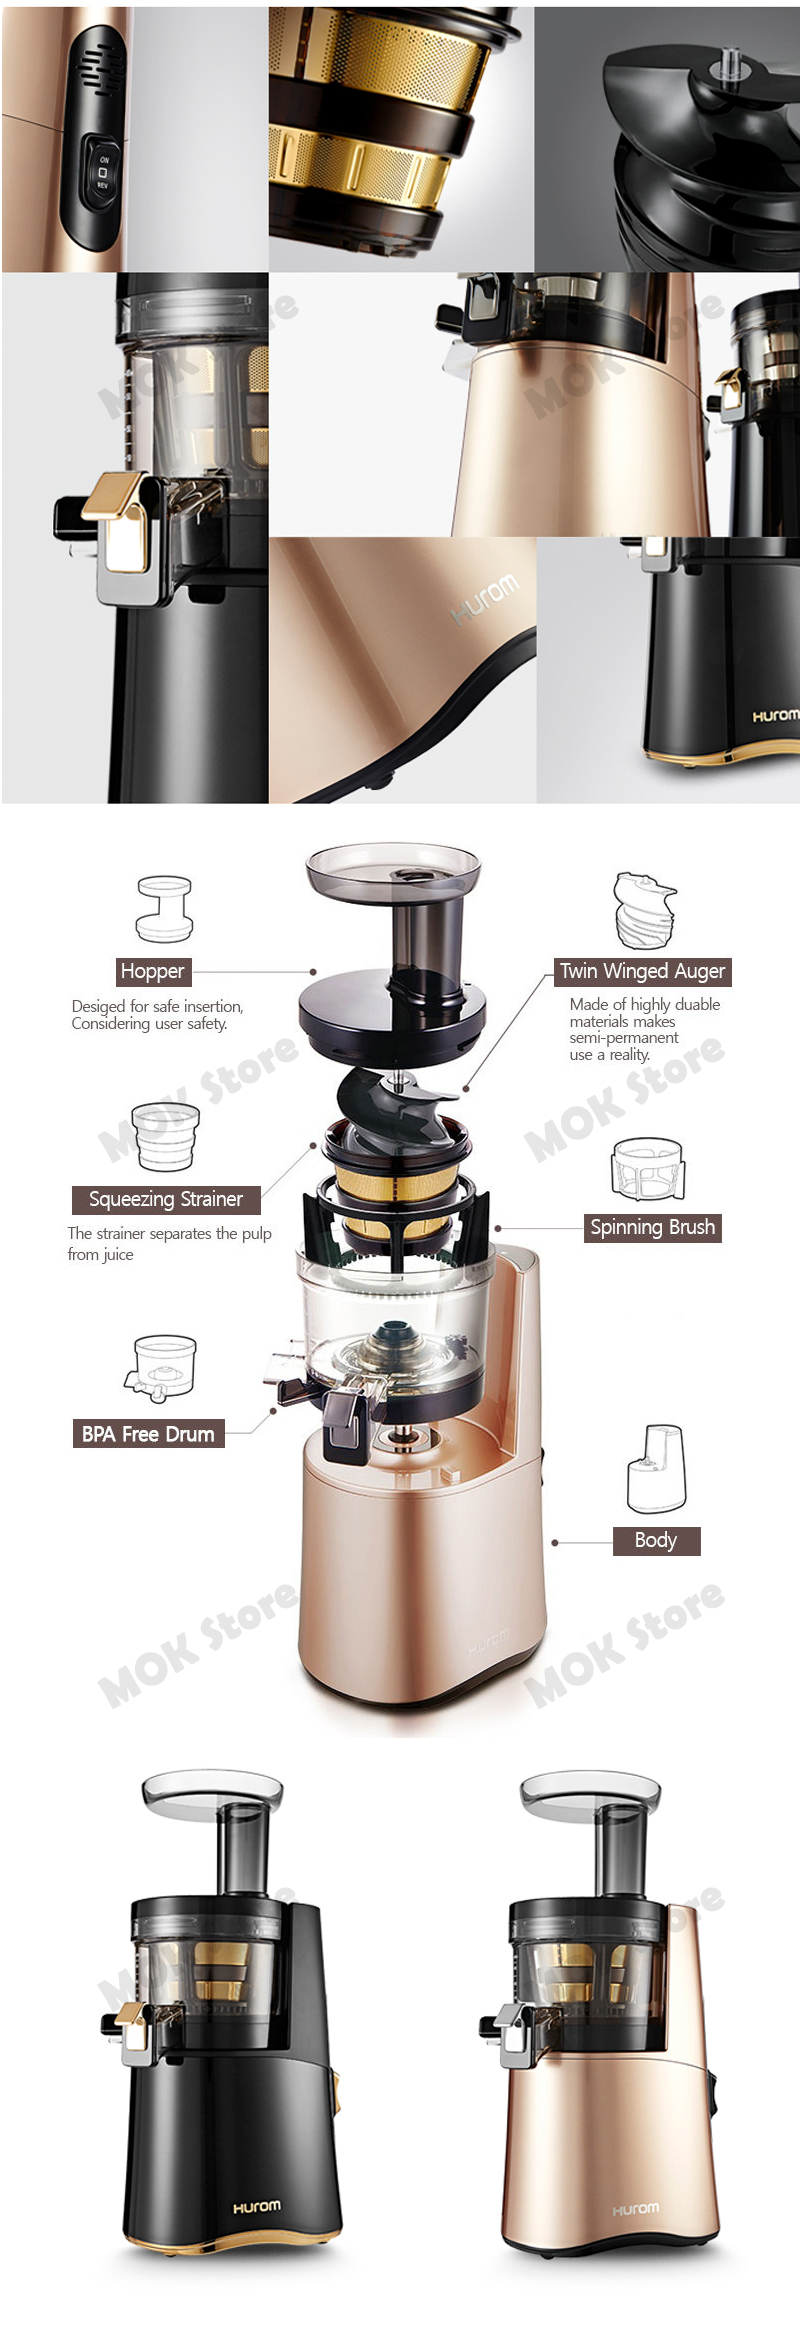 Hurom Premium Slow Juicer Hh Wbb07 : Hurom Alpha H AA LBF17 Premium Slow Cold Press Juicer Squeeze Extractor Black eBay